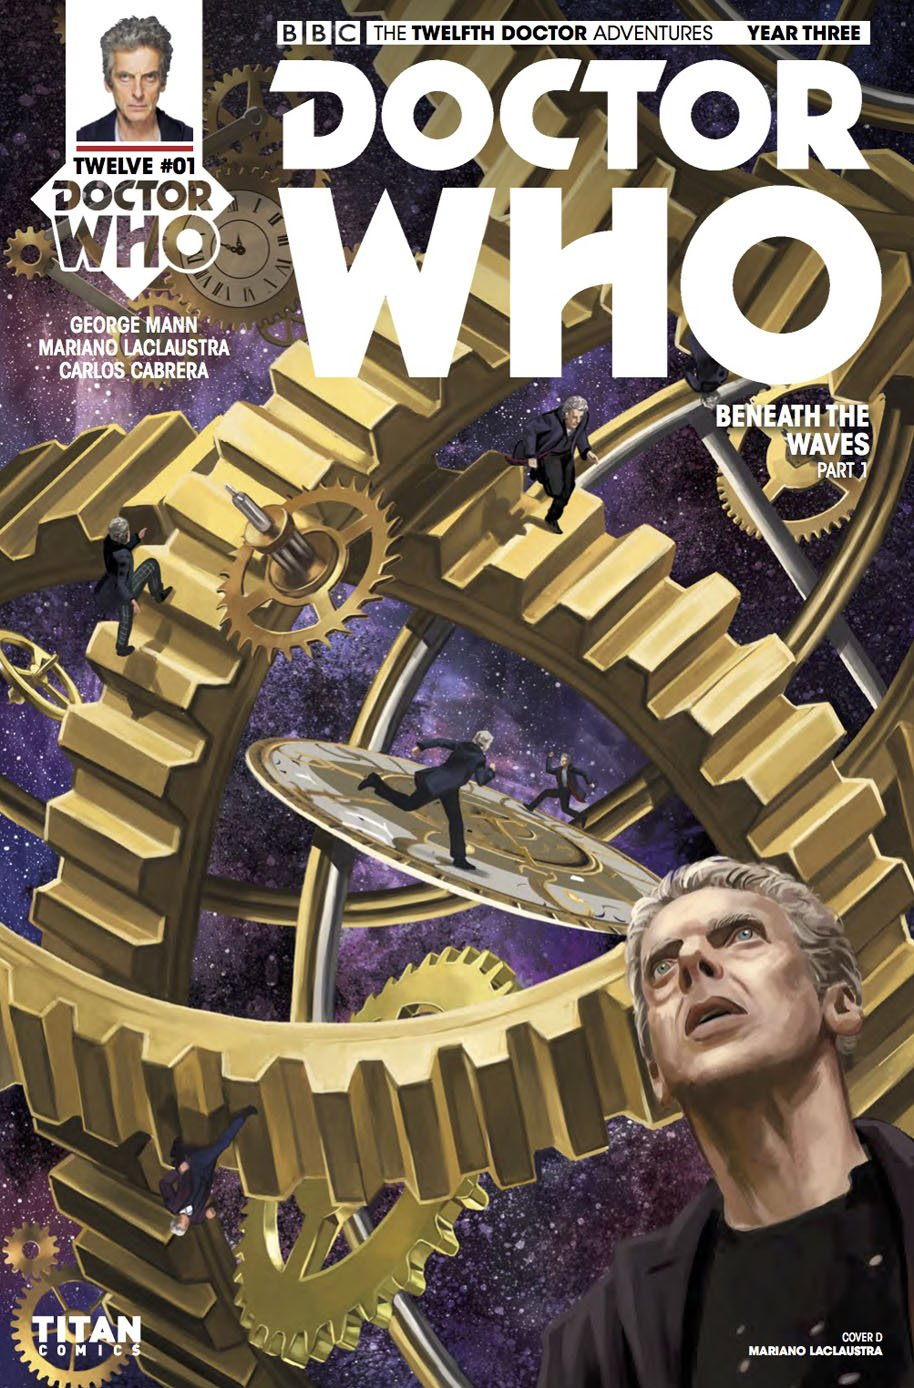 Doctor Who Twelfth Doctor Year Three 1 Cover D